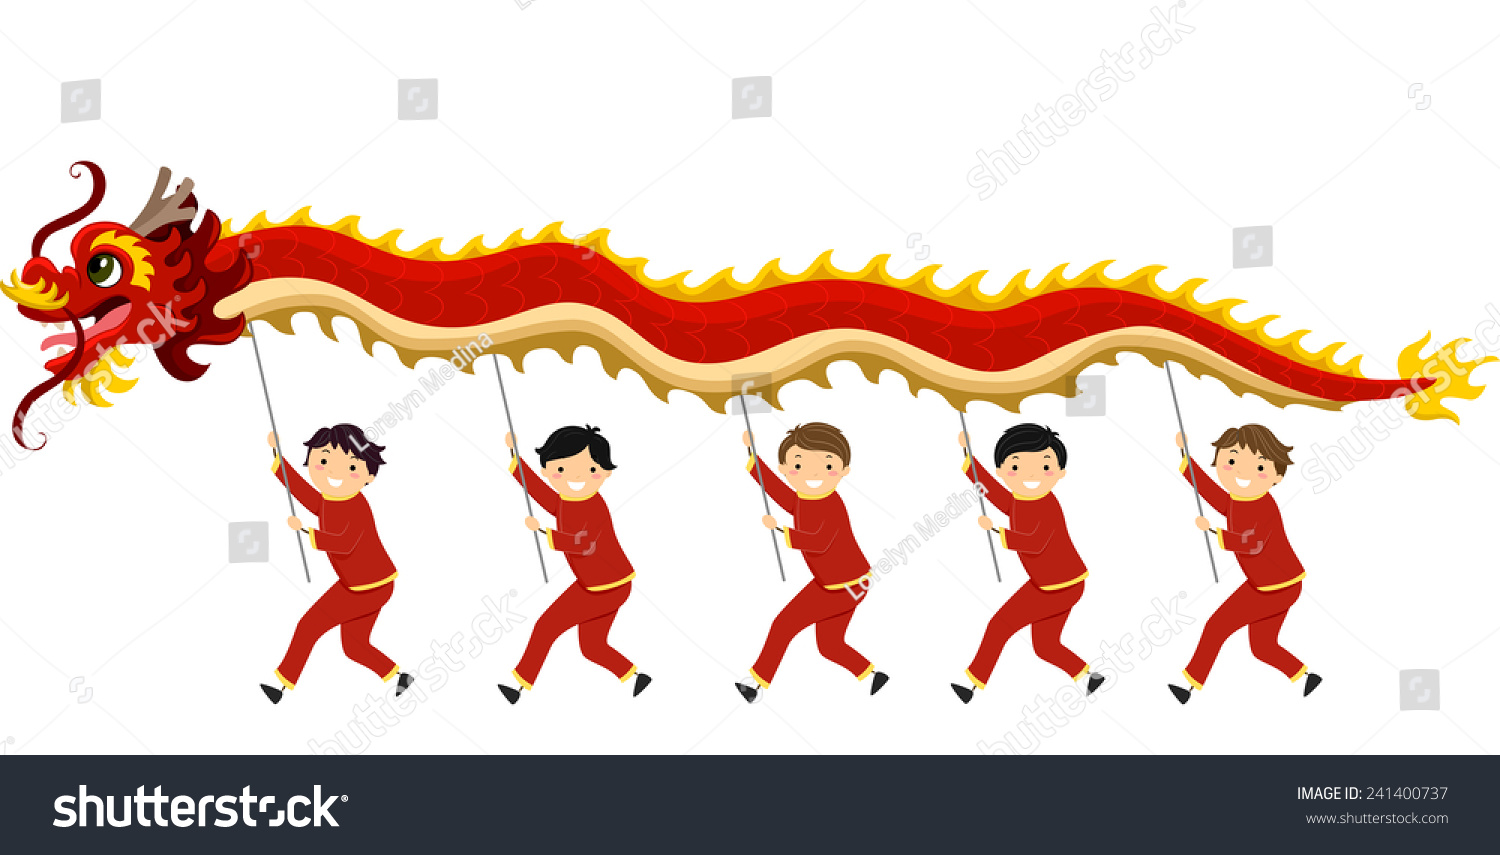 Chinese Dragon Parade Clip Art dragon dance stock photos, images ...